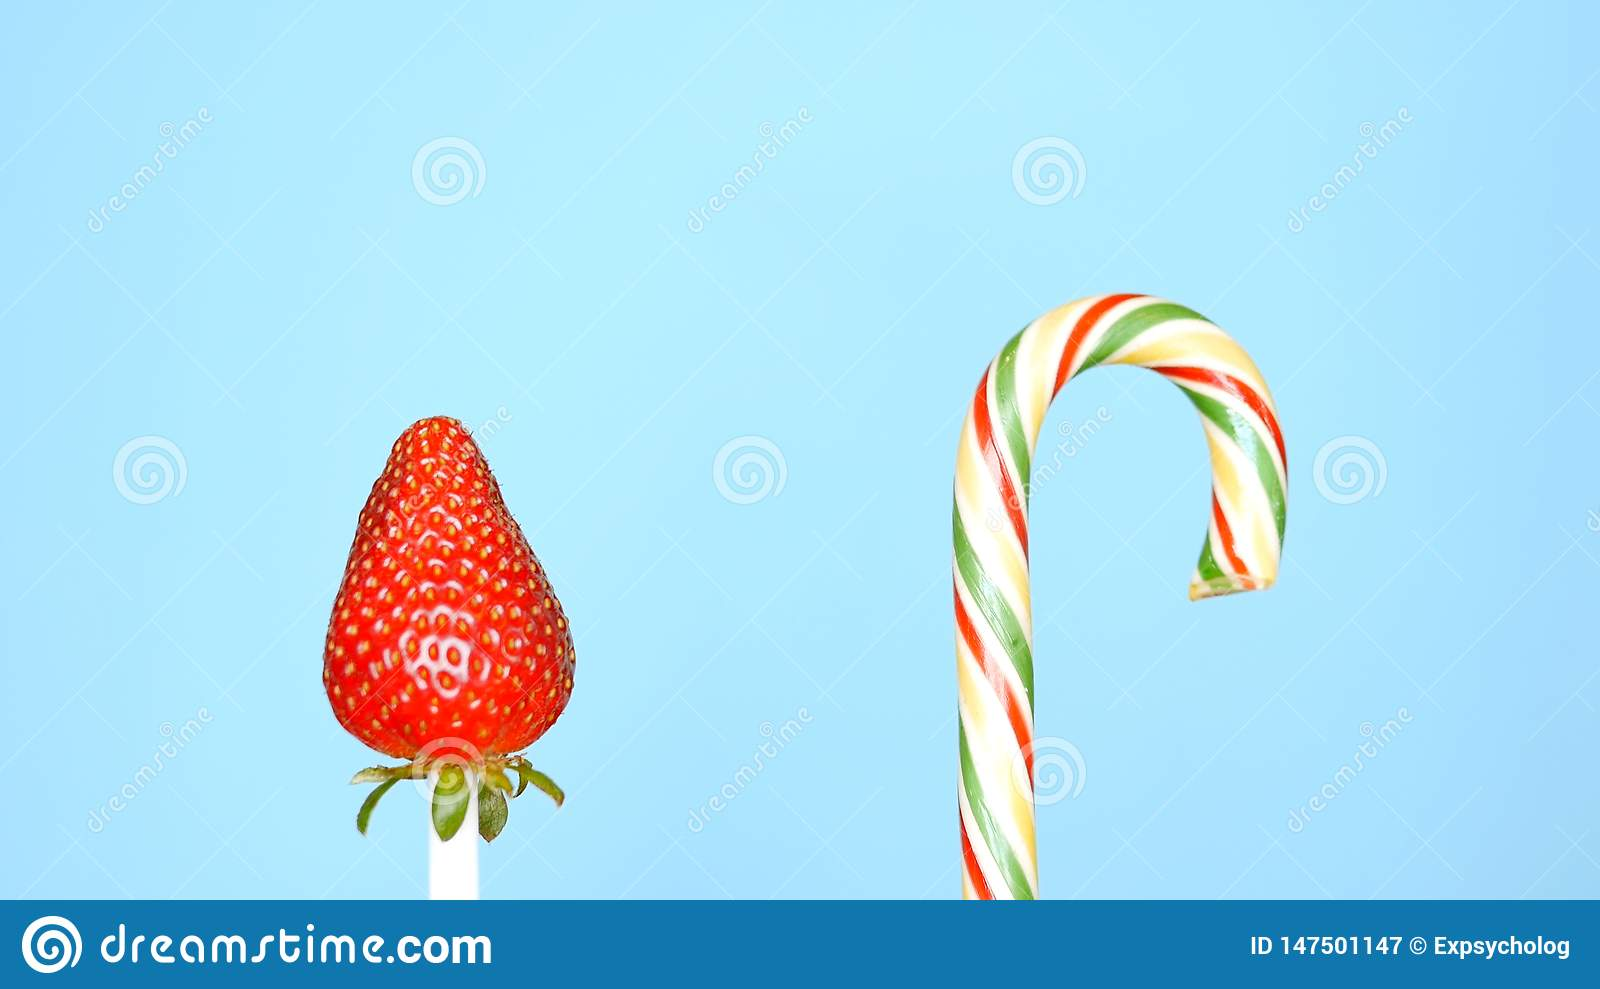 Concept of healthy and unhealthy food. strawberry against candy on a bright blue background